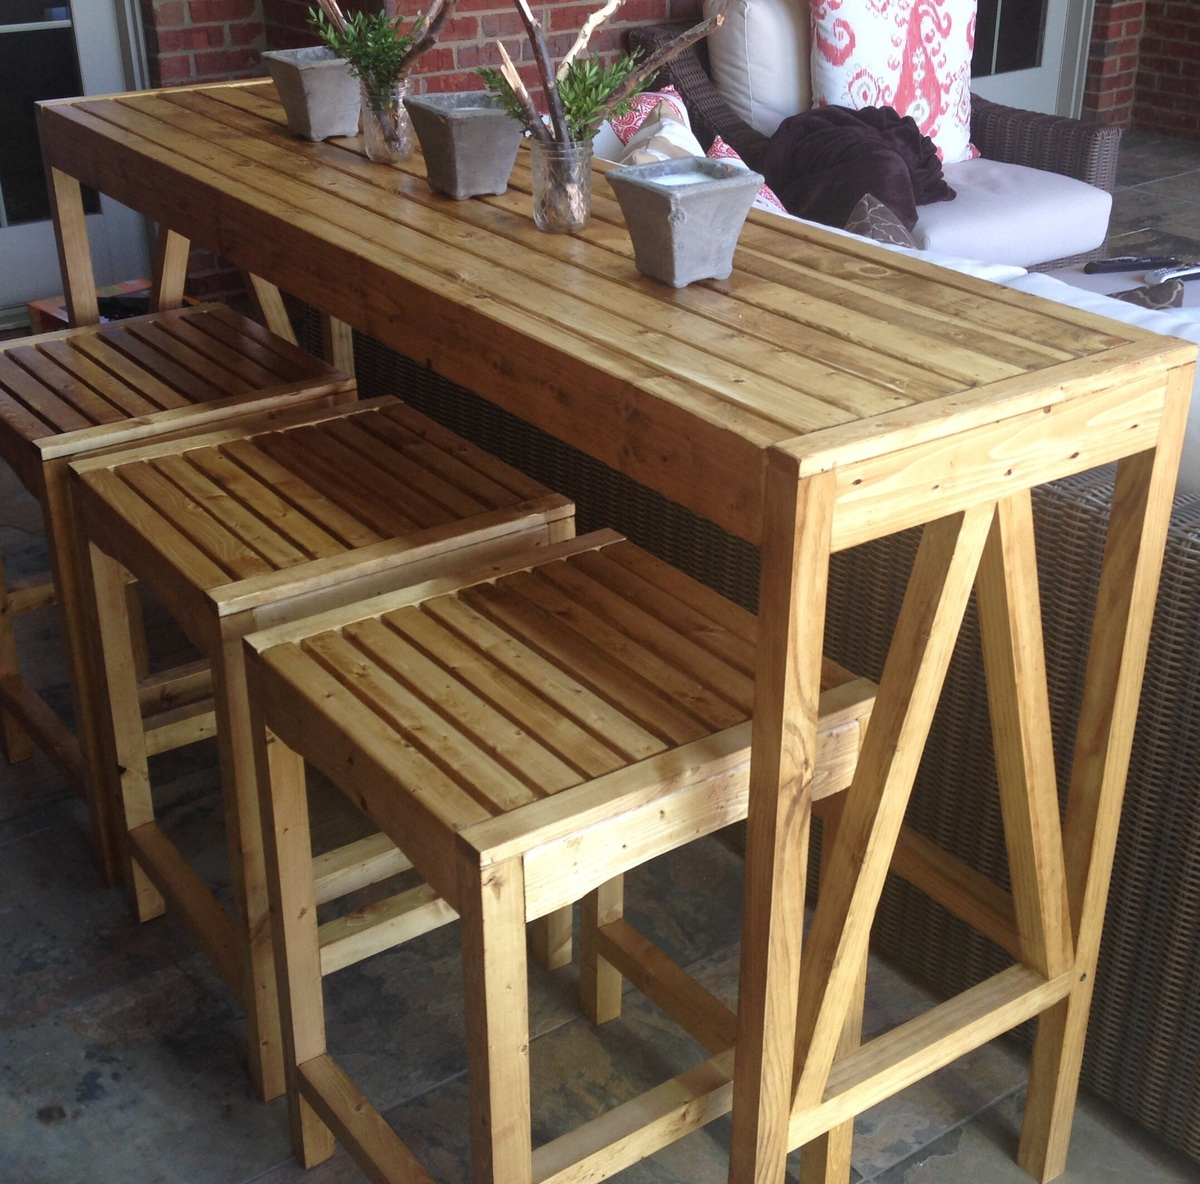 plans for ballard designs inspired sutton outdoor bar table stools